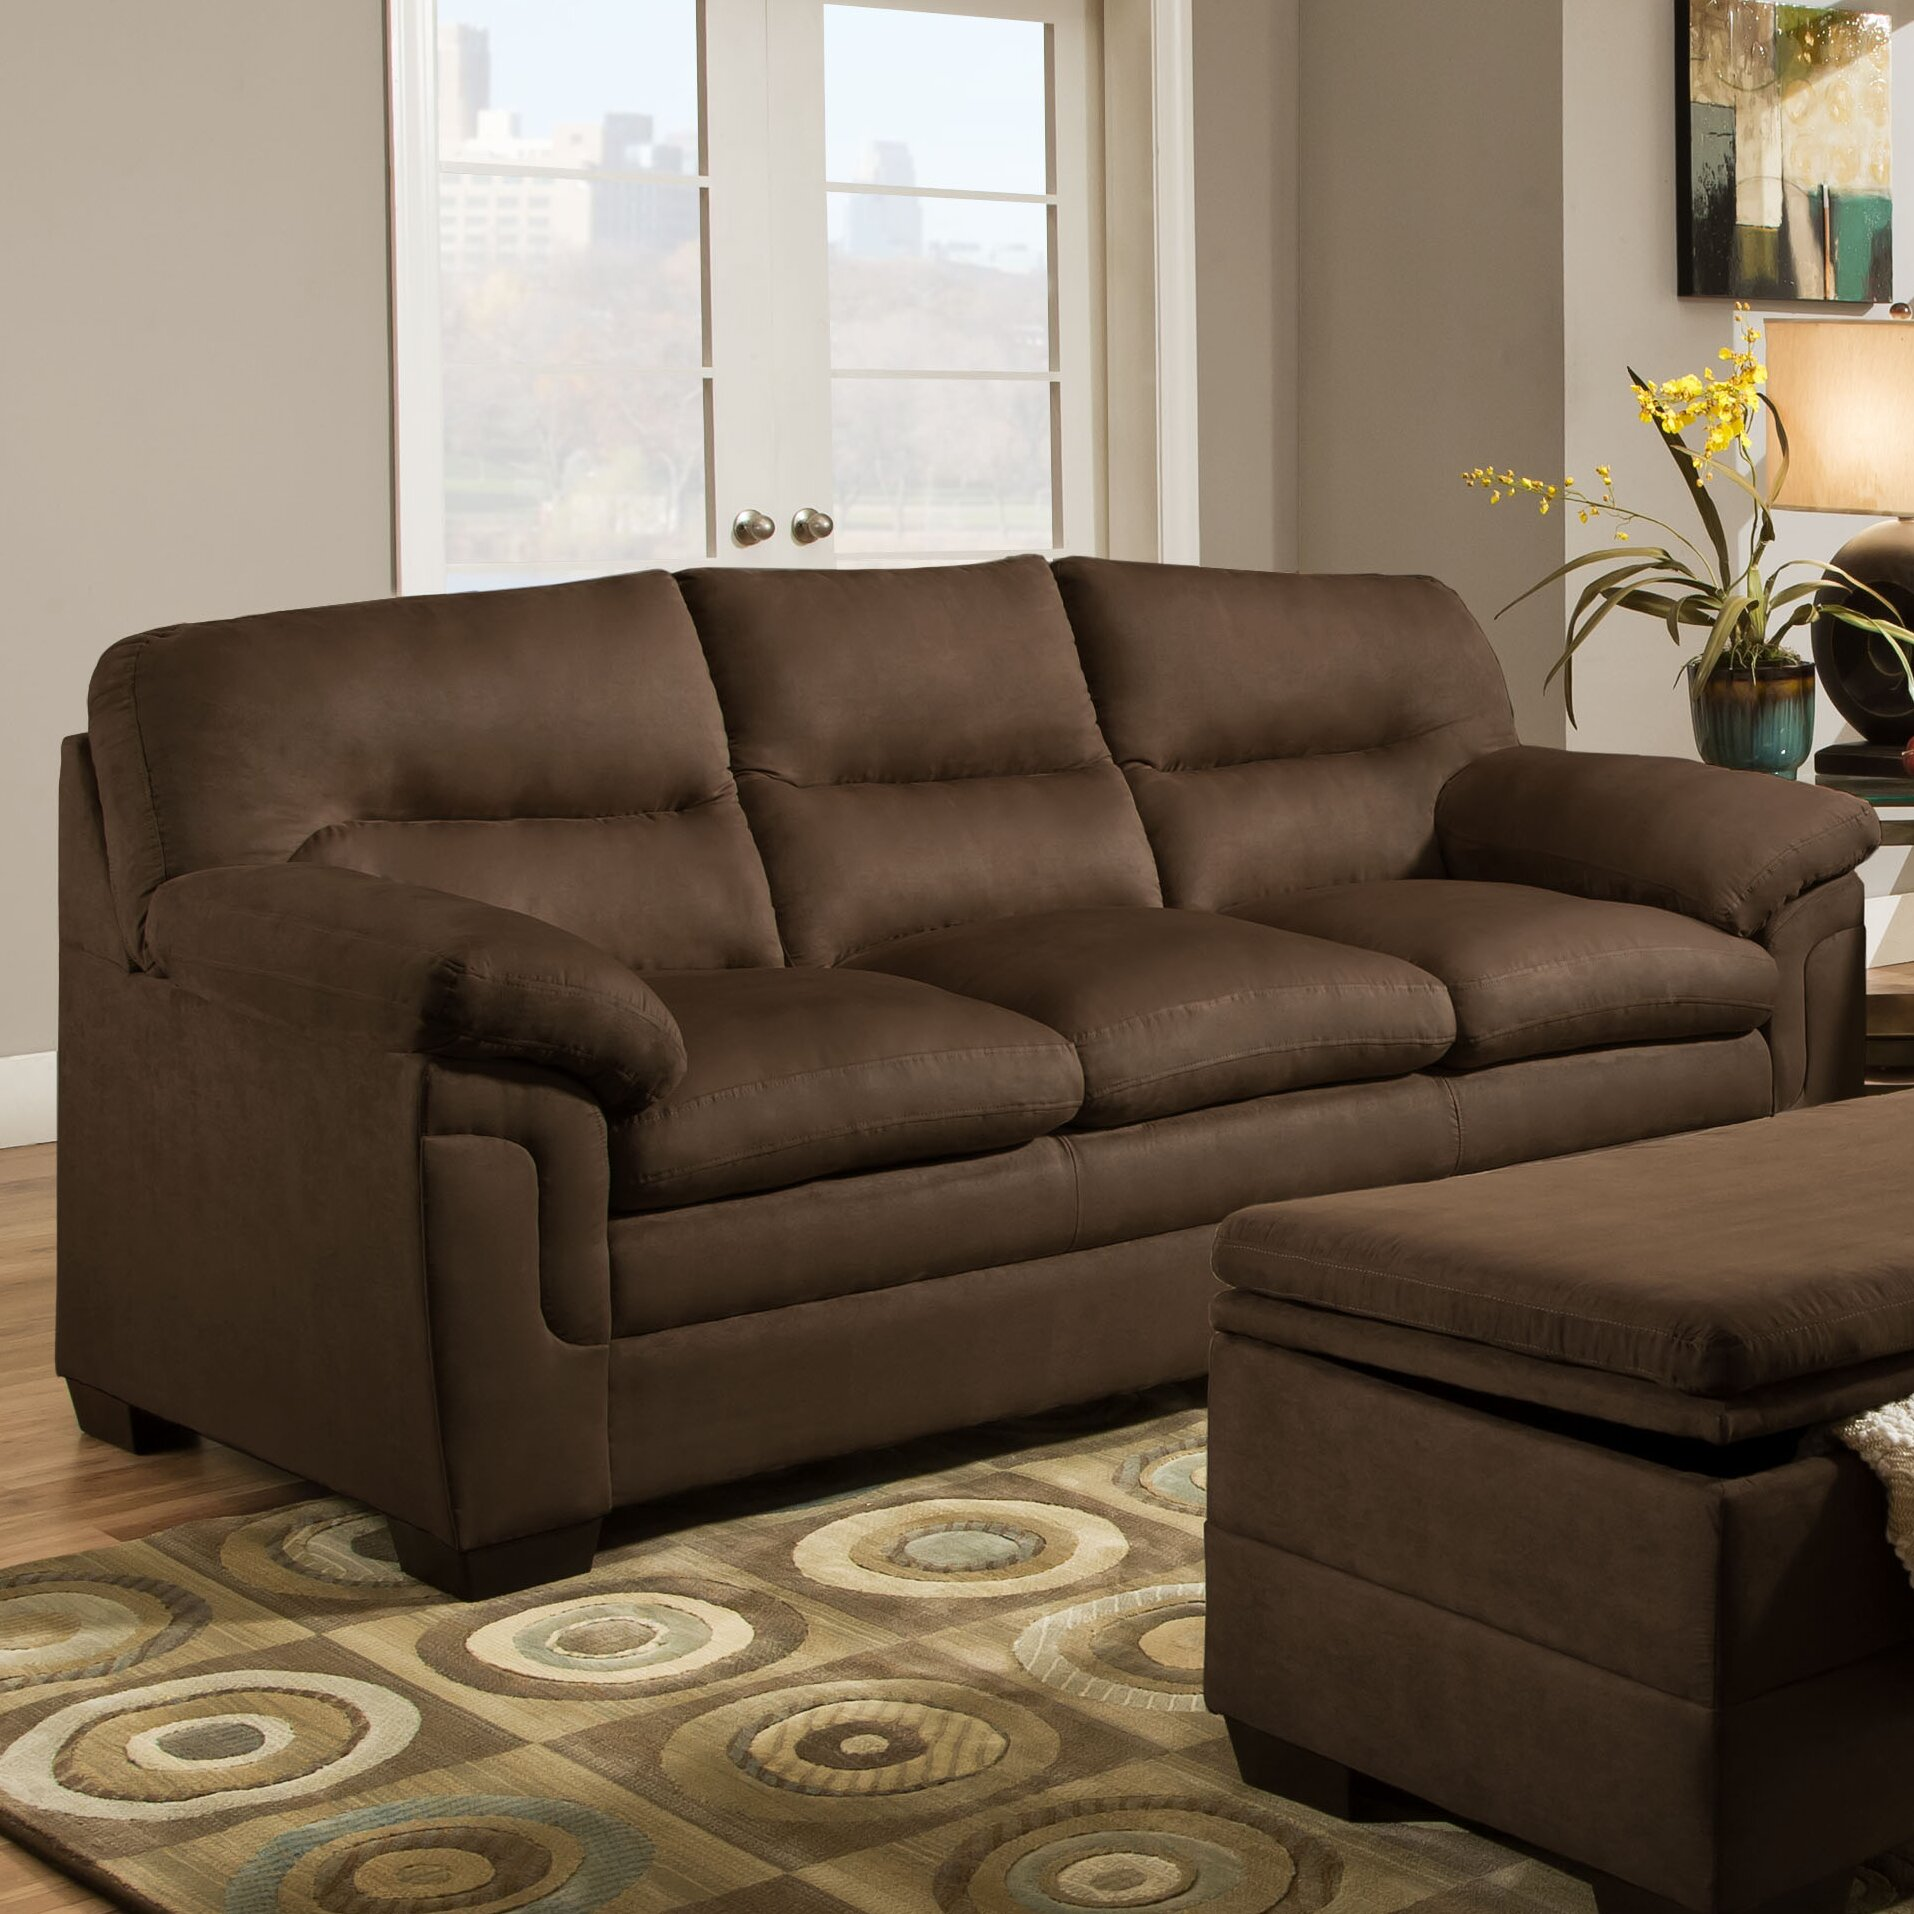 Simmons upholstery luna living room collection reviews for Simmons living room furniture